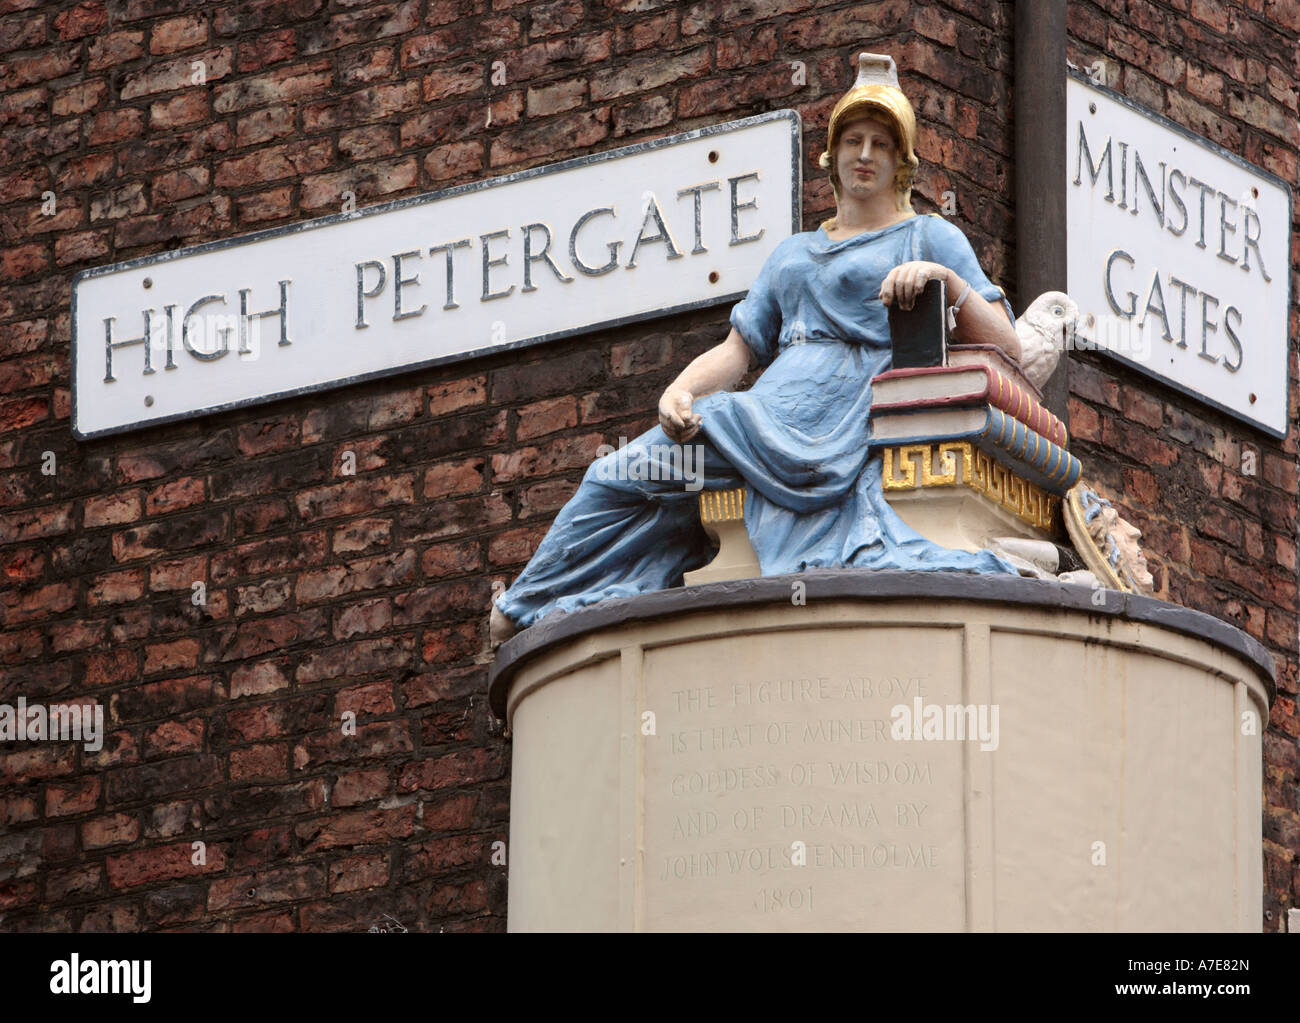 Statue of Minerva on the corner of High Petergate and Minster Gates York North Yorkshire England - Stock Image